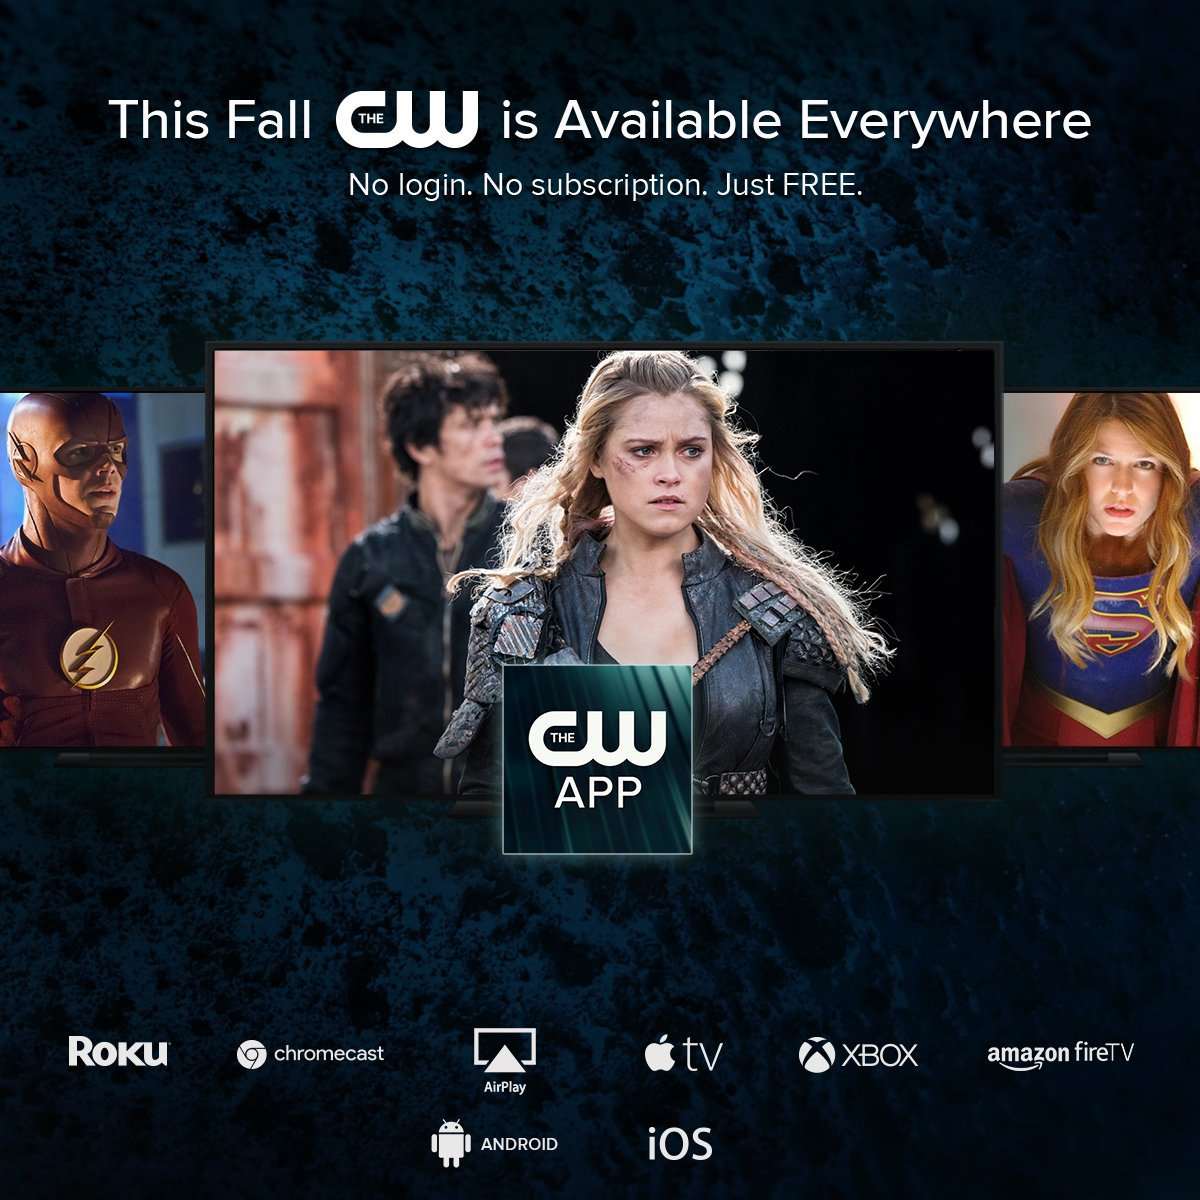 Starting next week, The CW is available everywhere. Find out more: https://t.co/KzqjPv82TD https://t.co/NEor4cB0Ip